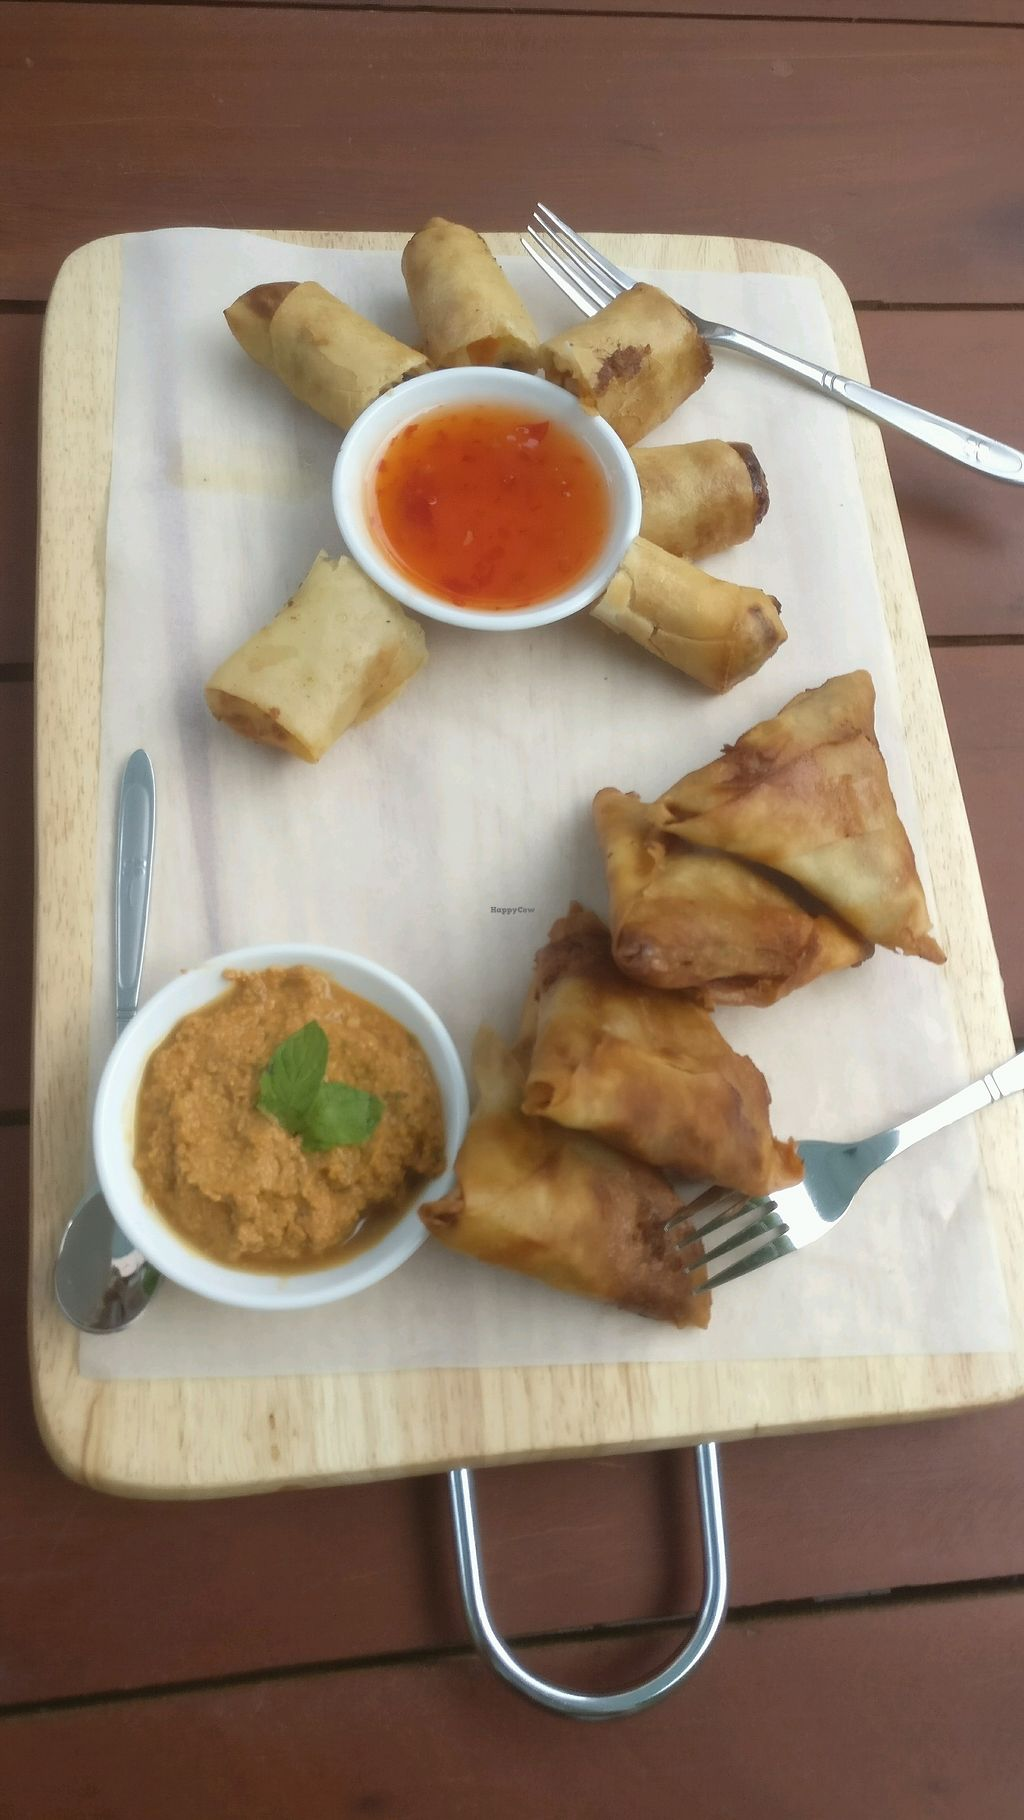 """Photo of Moringa Bar & Restaurant  by <a href=""""/members/profile/nick4554"""">nick4554</a> <br/>amazing tasting platter of Samosas and spring rolls!  <br/> November 5, 2017  - <a href='/contact/abuse/image/103857/322125'>Report</a>"""